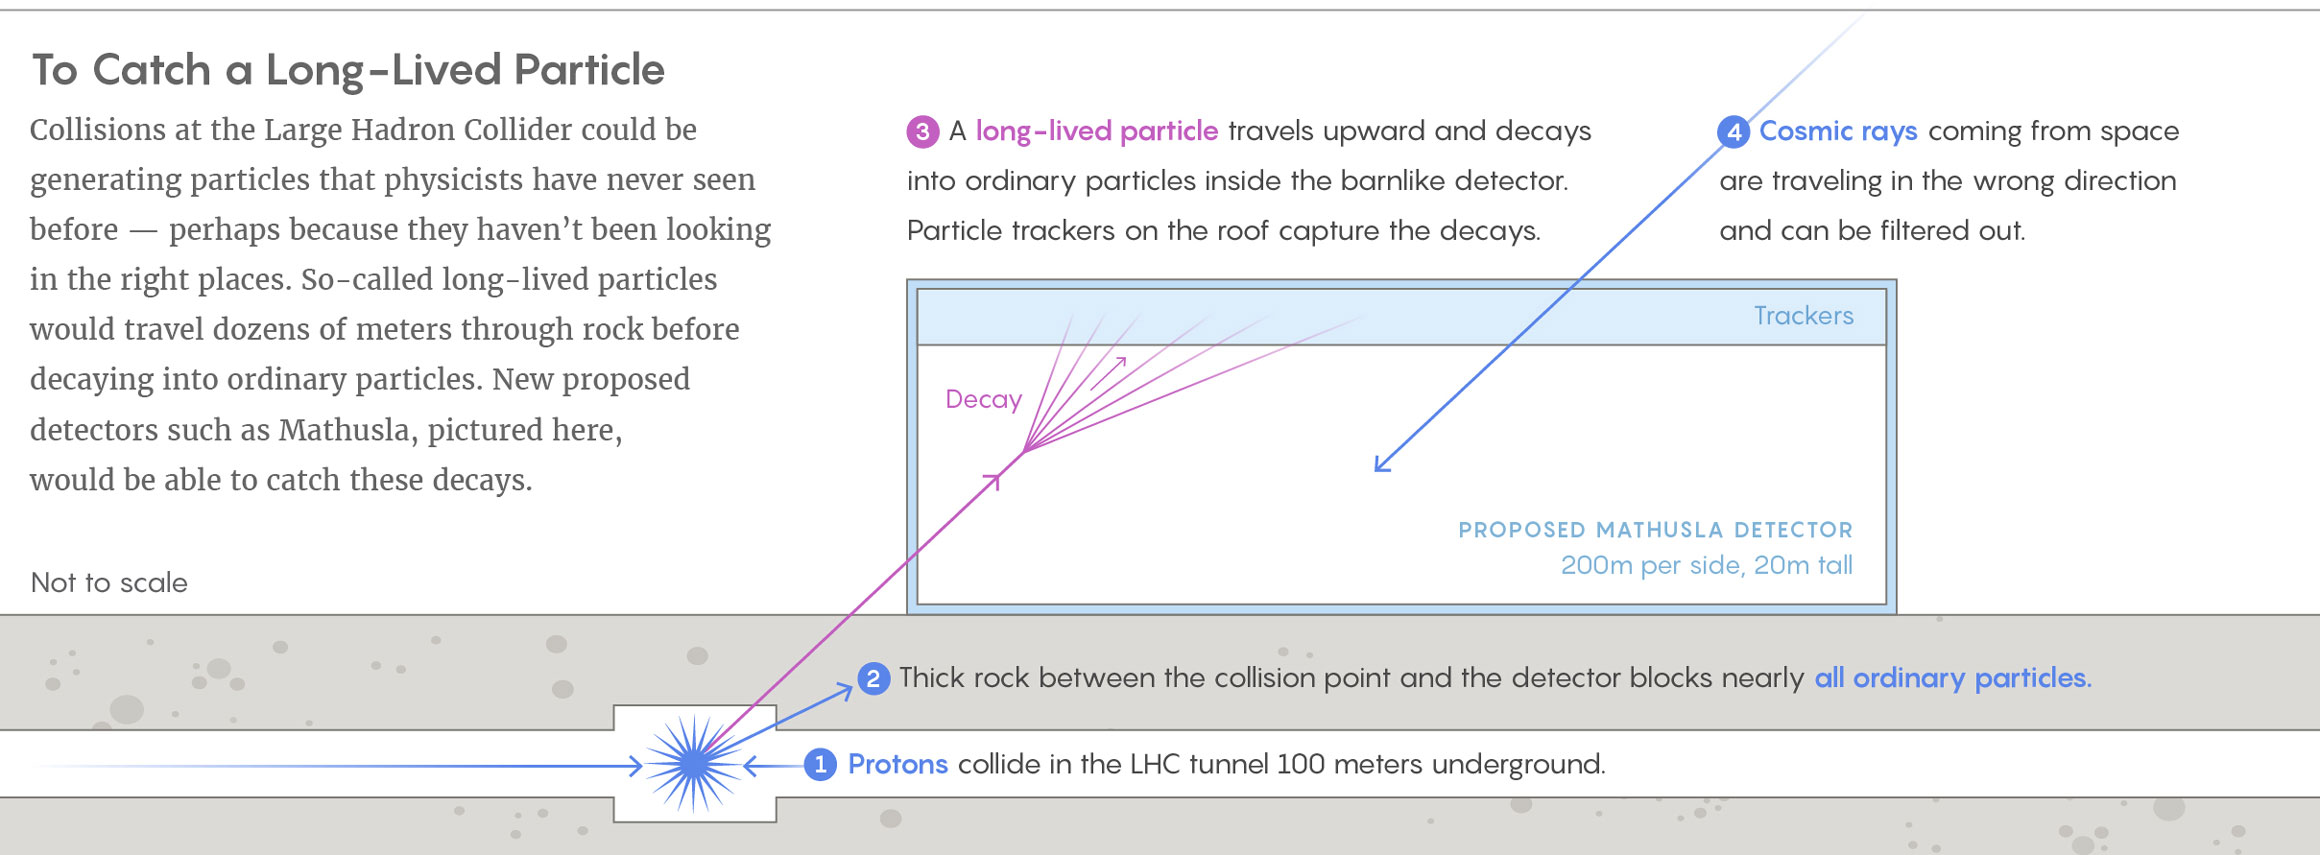 To catch a long-lived particle